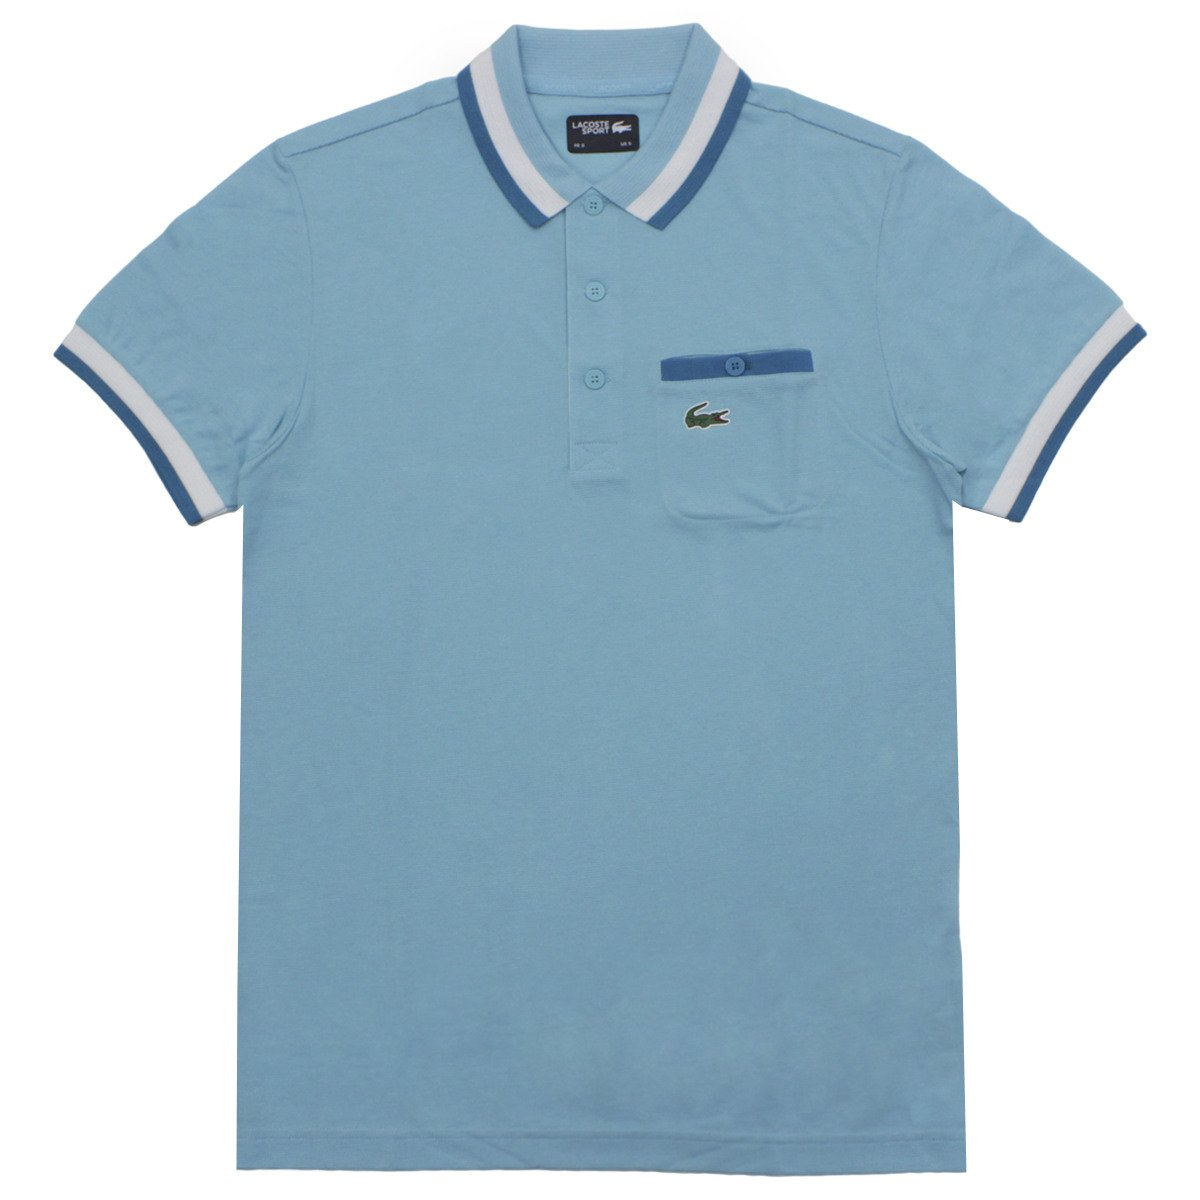 d5346a4c31a6a Camisa Lacoste Polo Yh209421 Masculina